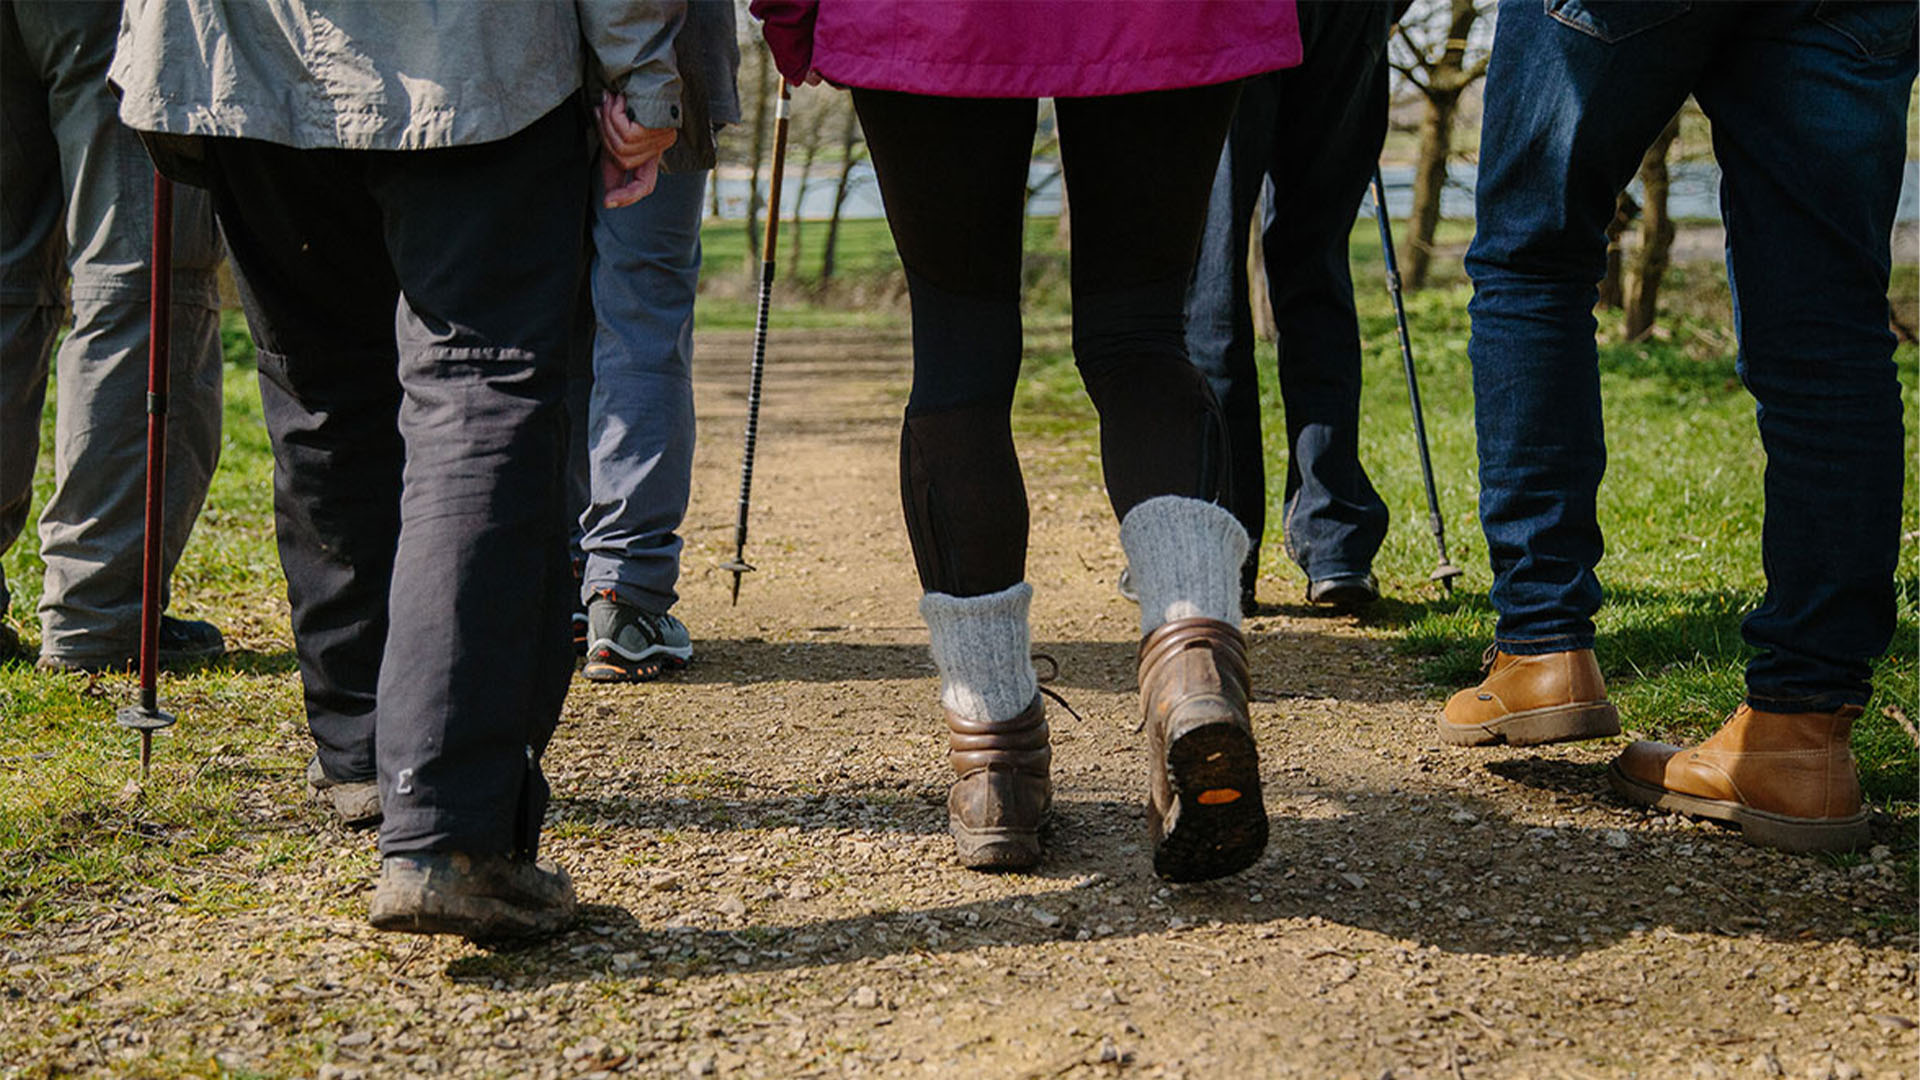 Picture of people's legs, walking with some walking sticks